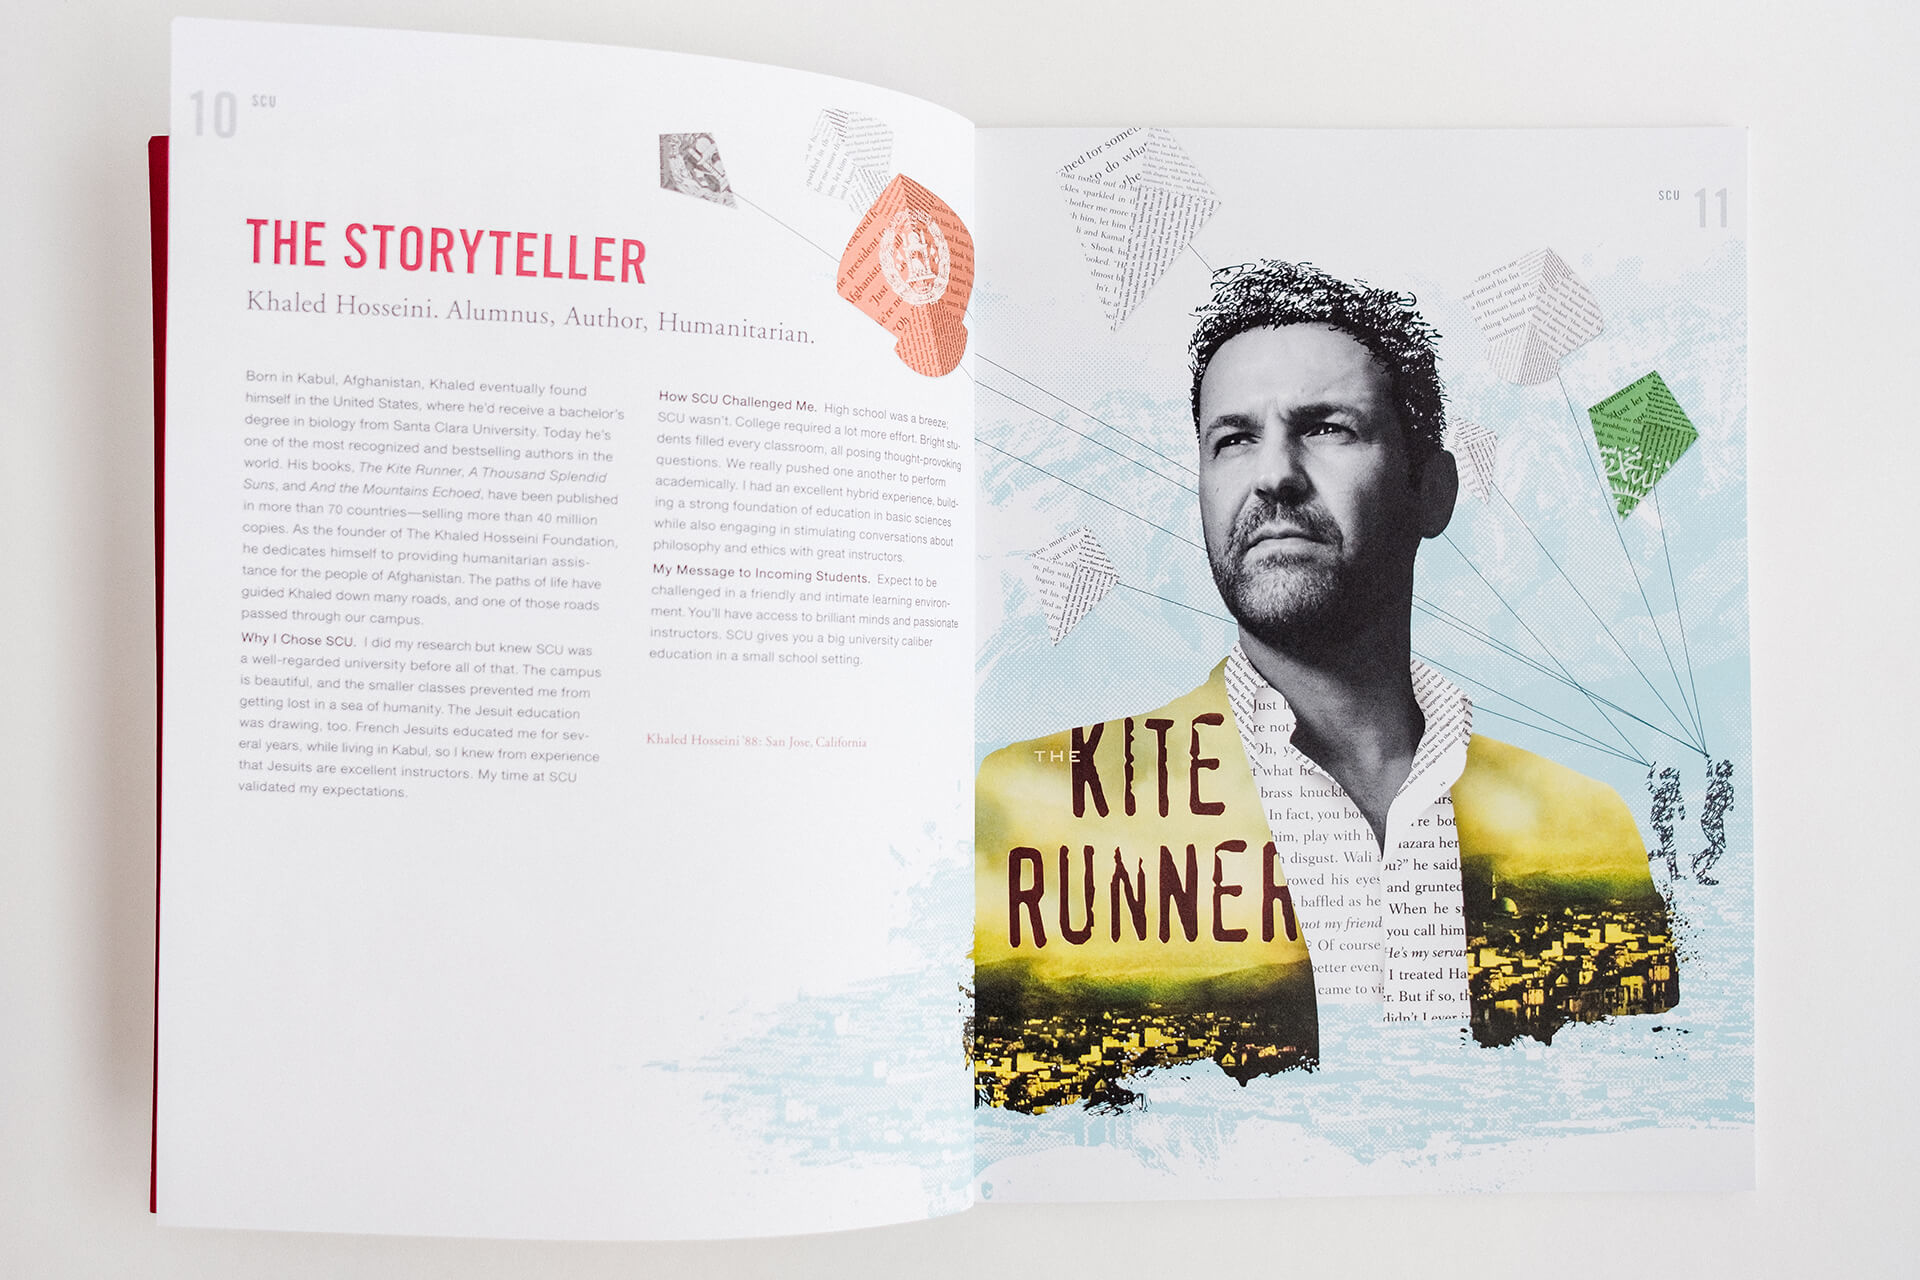 Kite Runner catalog spread